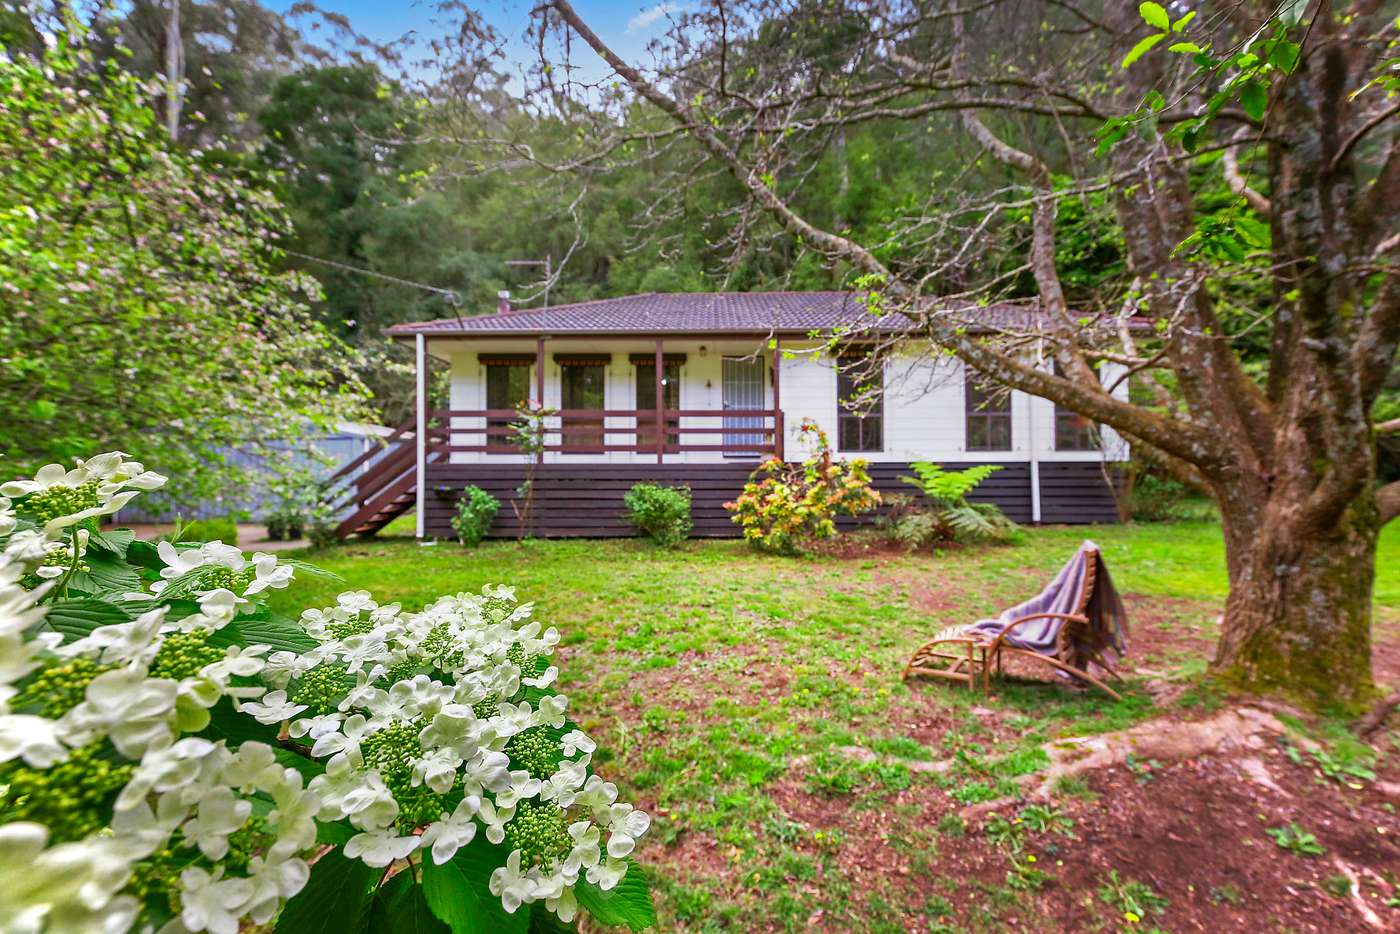 Main view of Homely house listing, 195 Woods Point Road, East Warburton, VIC 3799